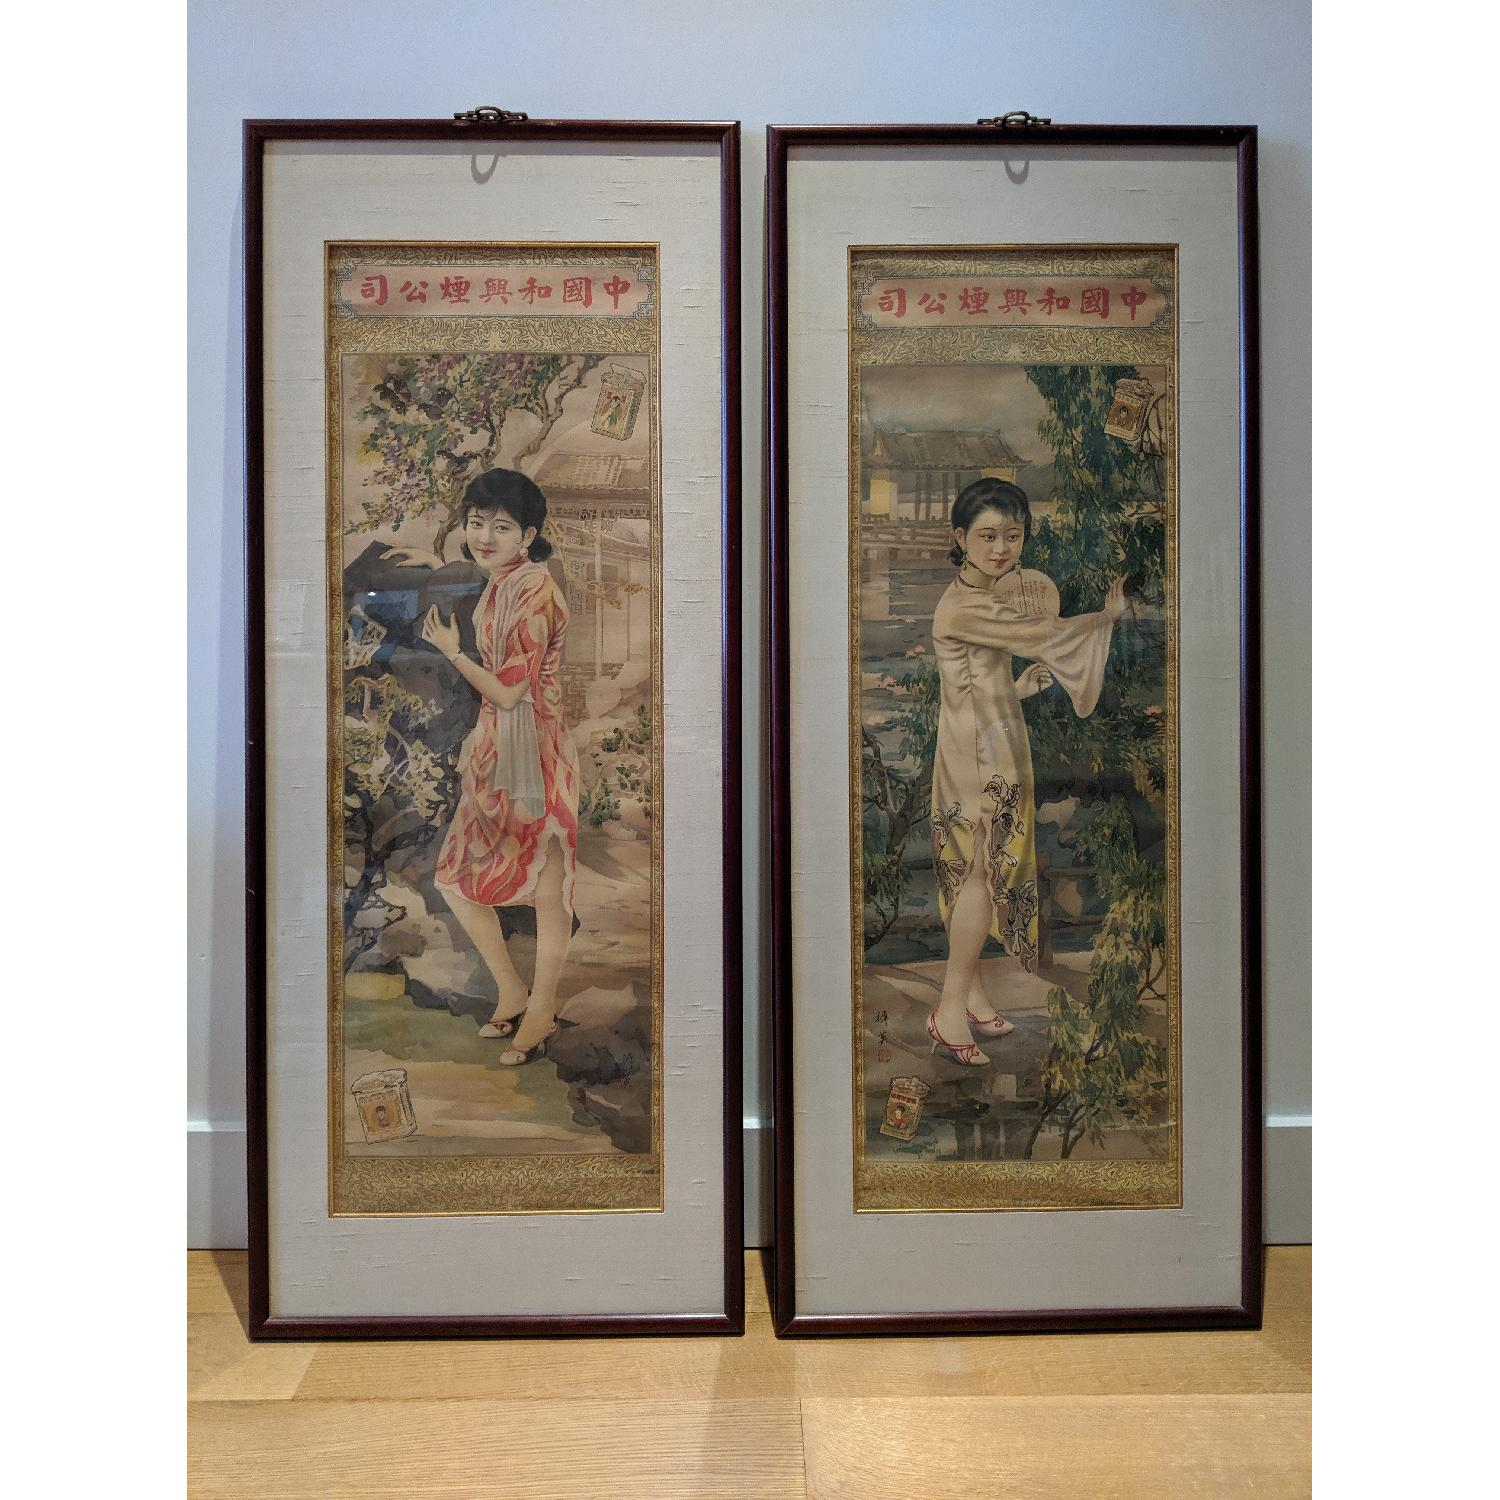 Vintage 1930s Silk Chinese Ads - image-1